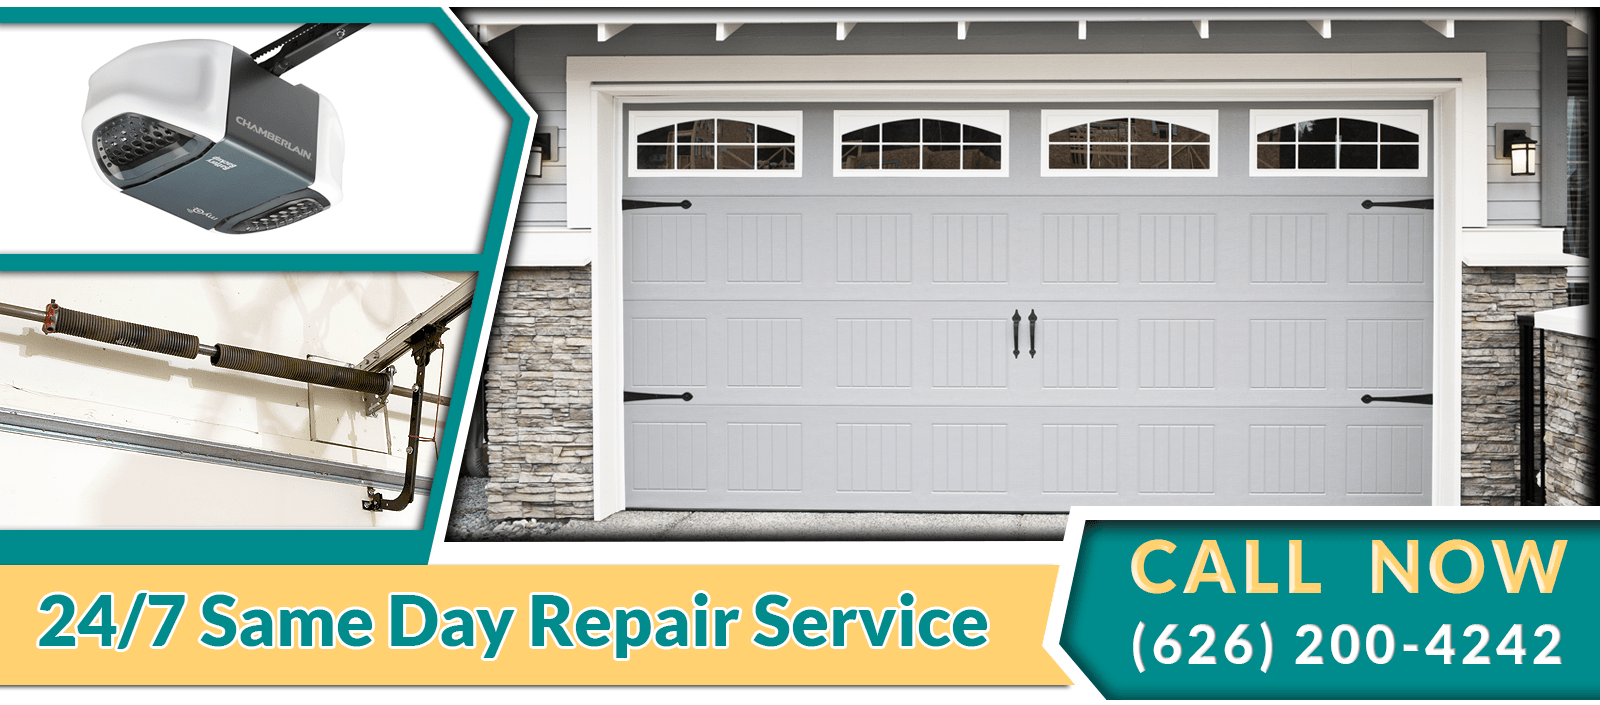 Garage Door Repair Pasadena CA | Same Day Service (626) 200-4242 on shower door repair, home door repair, garage car repair, this old house door repair, auto door repair, diy garage repair, sliding door repair, garage ideas, garage kits, cabinet door repair, garage walls, pocket door repair, garage doors product, refrigerator door repair, door jamb repair, interior door repair, anderson storm door repair, garage storage, backyard door repair, garage sale signs,